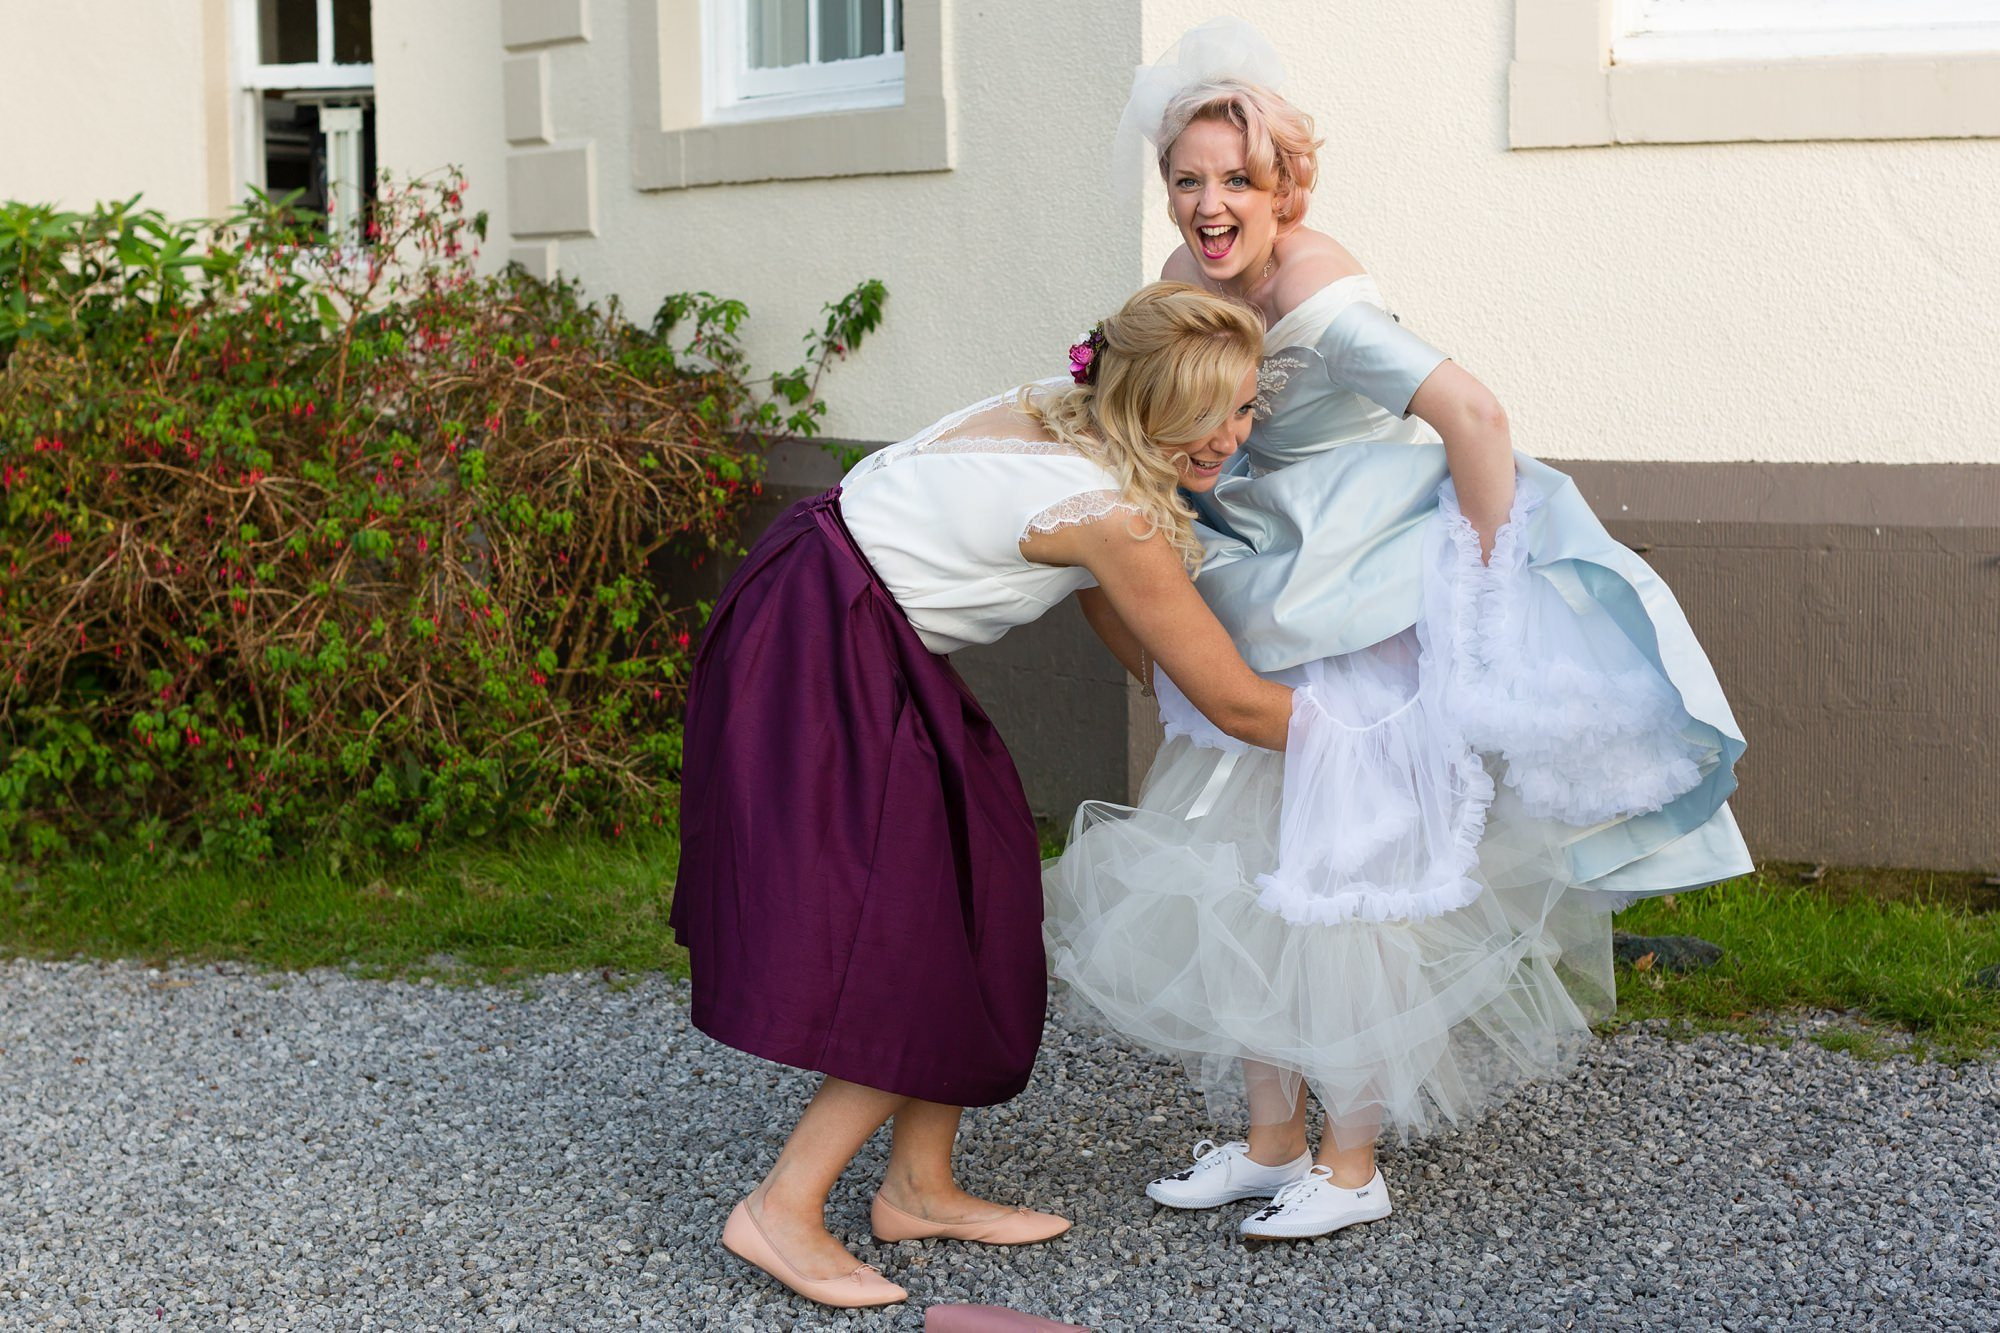 Bridesmaid helps bride adjust petticoat